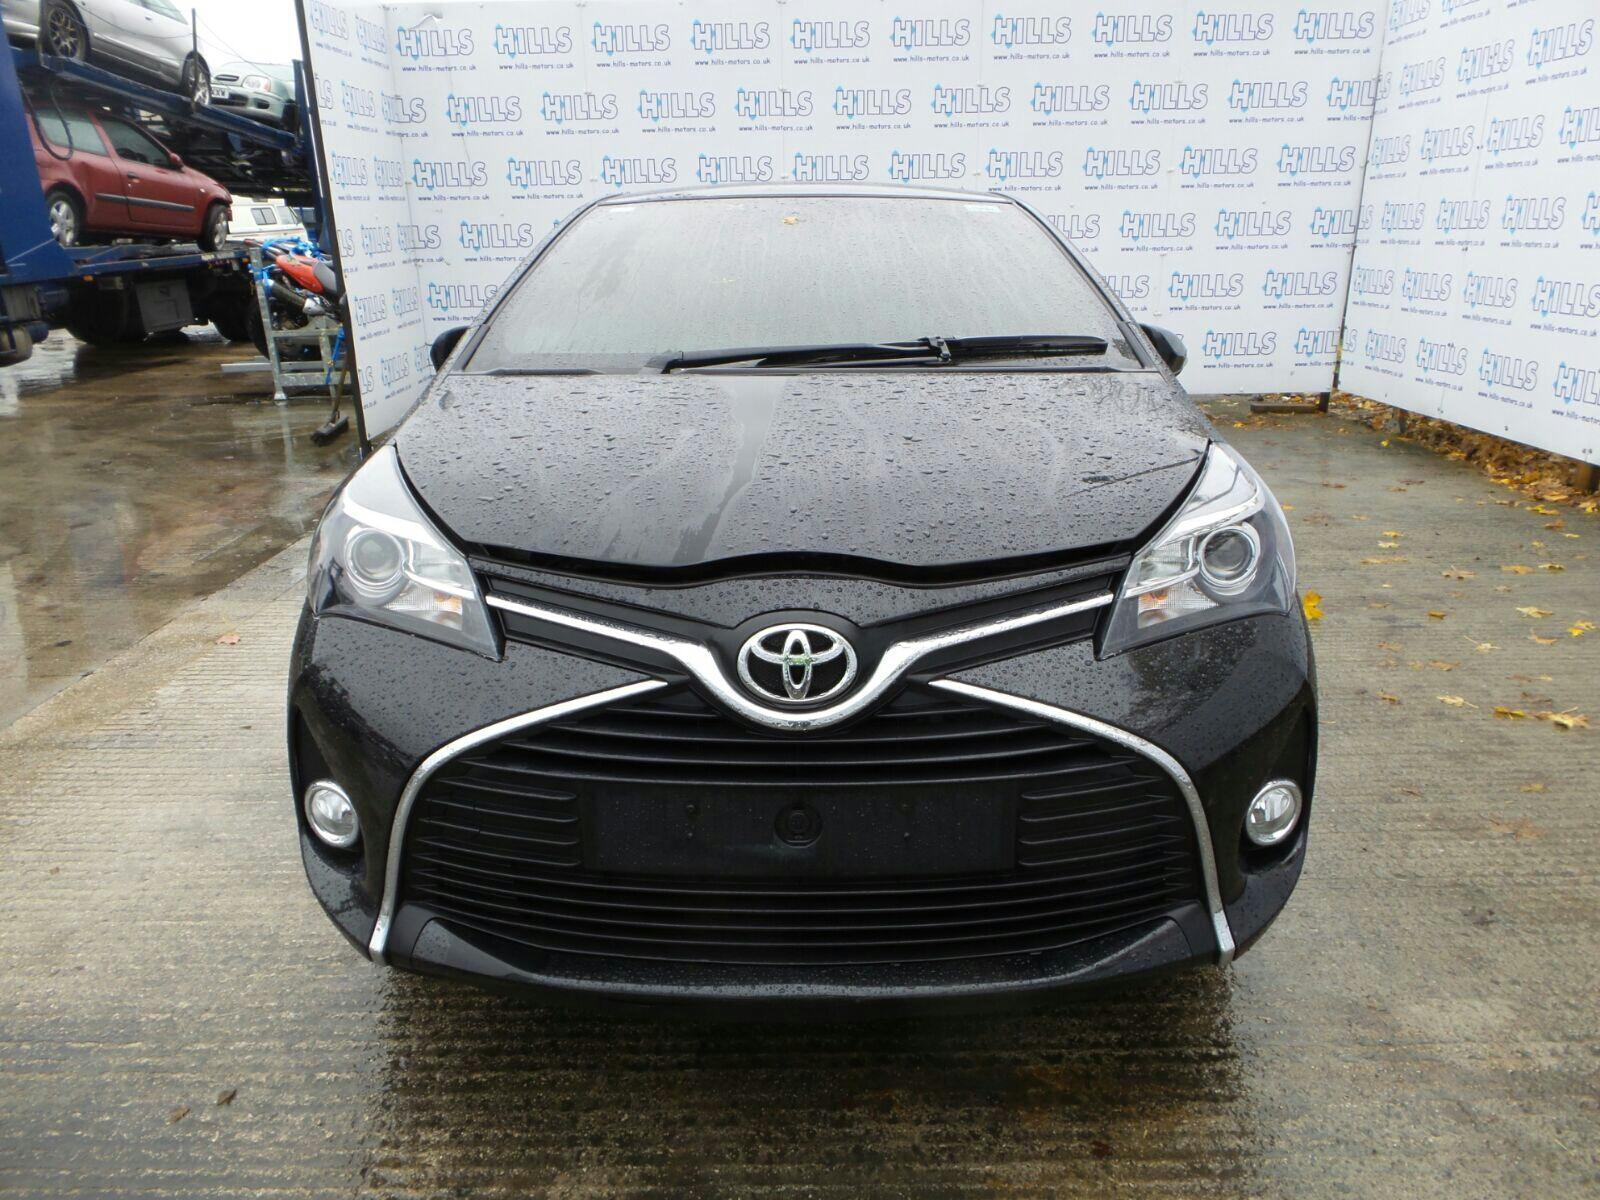 2015 toyota yaris 1364 diesel engine 1nd tv ebay. Black Bedroom Furniture Sets. Home Design Ideas